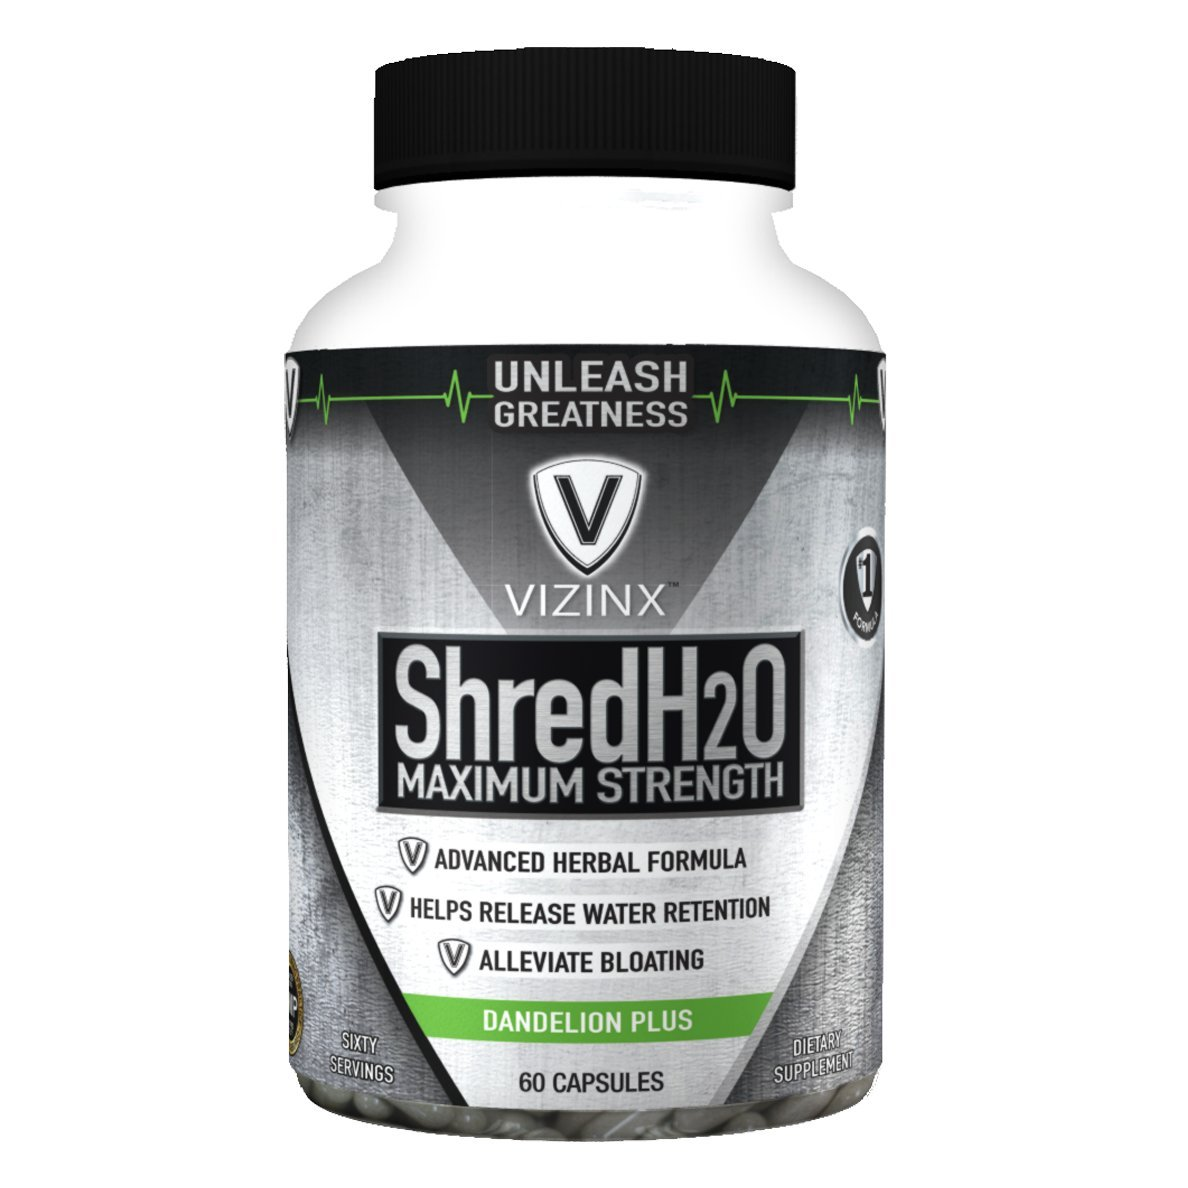 VIZINX Shred H2O Herbal Diuretic - #1 Formula with Dandelion, Green Tea, Cranberry, Apple Cider Vinegar, Buchu, Juniper, Watermelon & More. Supports Healthy Potassium Levels & Water Balance 60 caps. by VIZINX